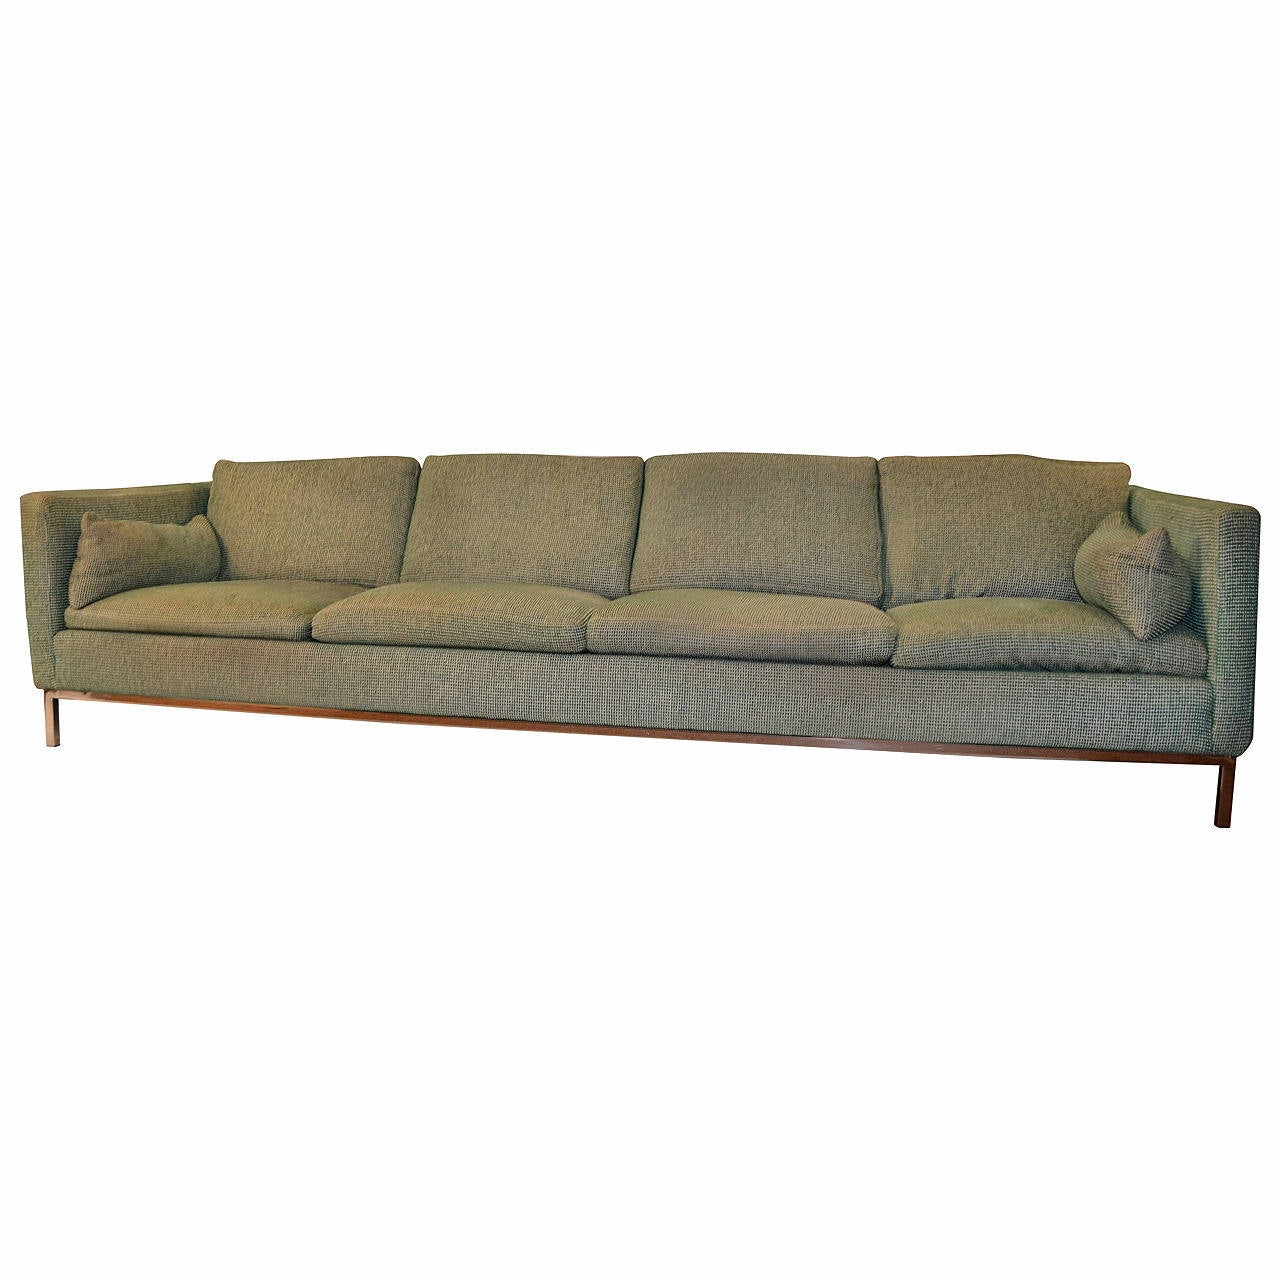 extra long sofa by steelcase for sale at 1stdibs